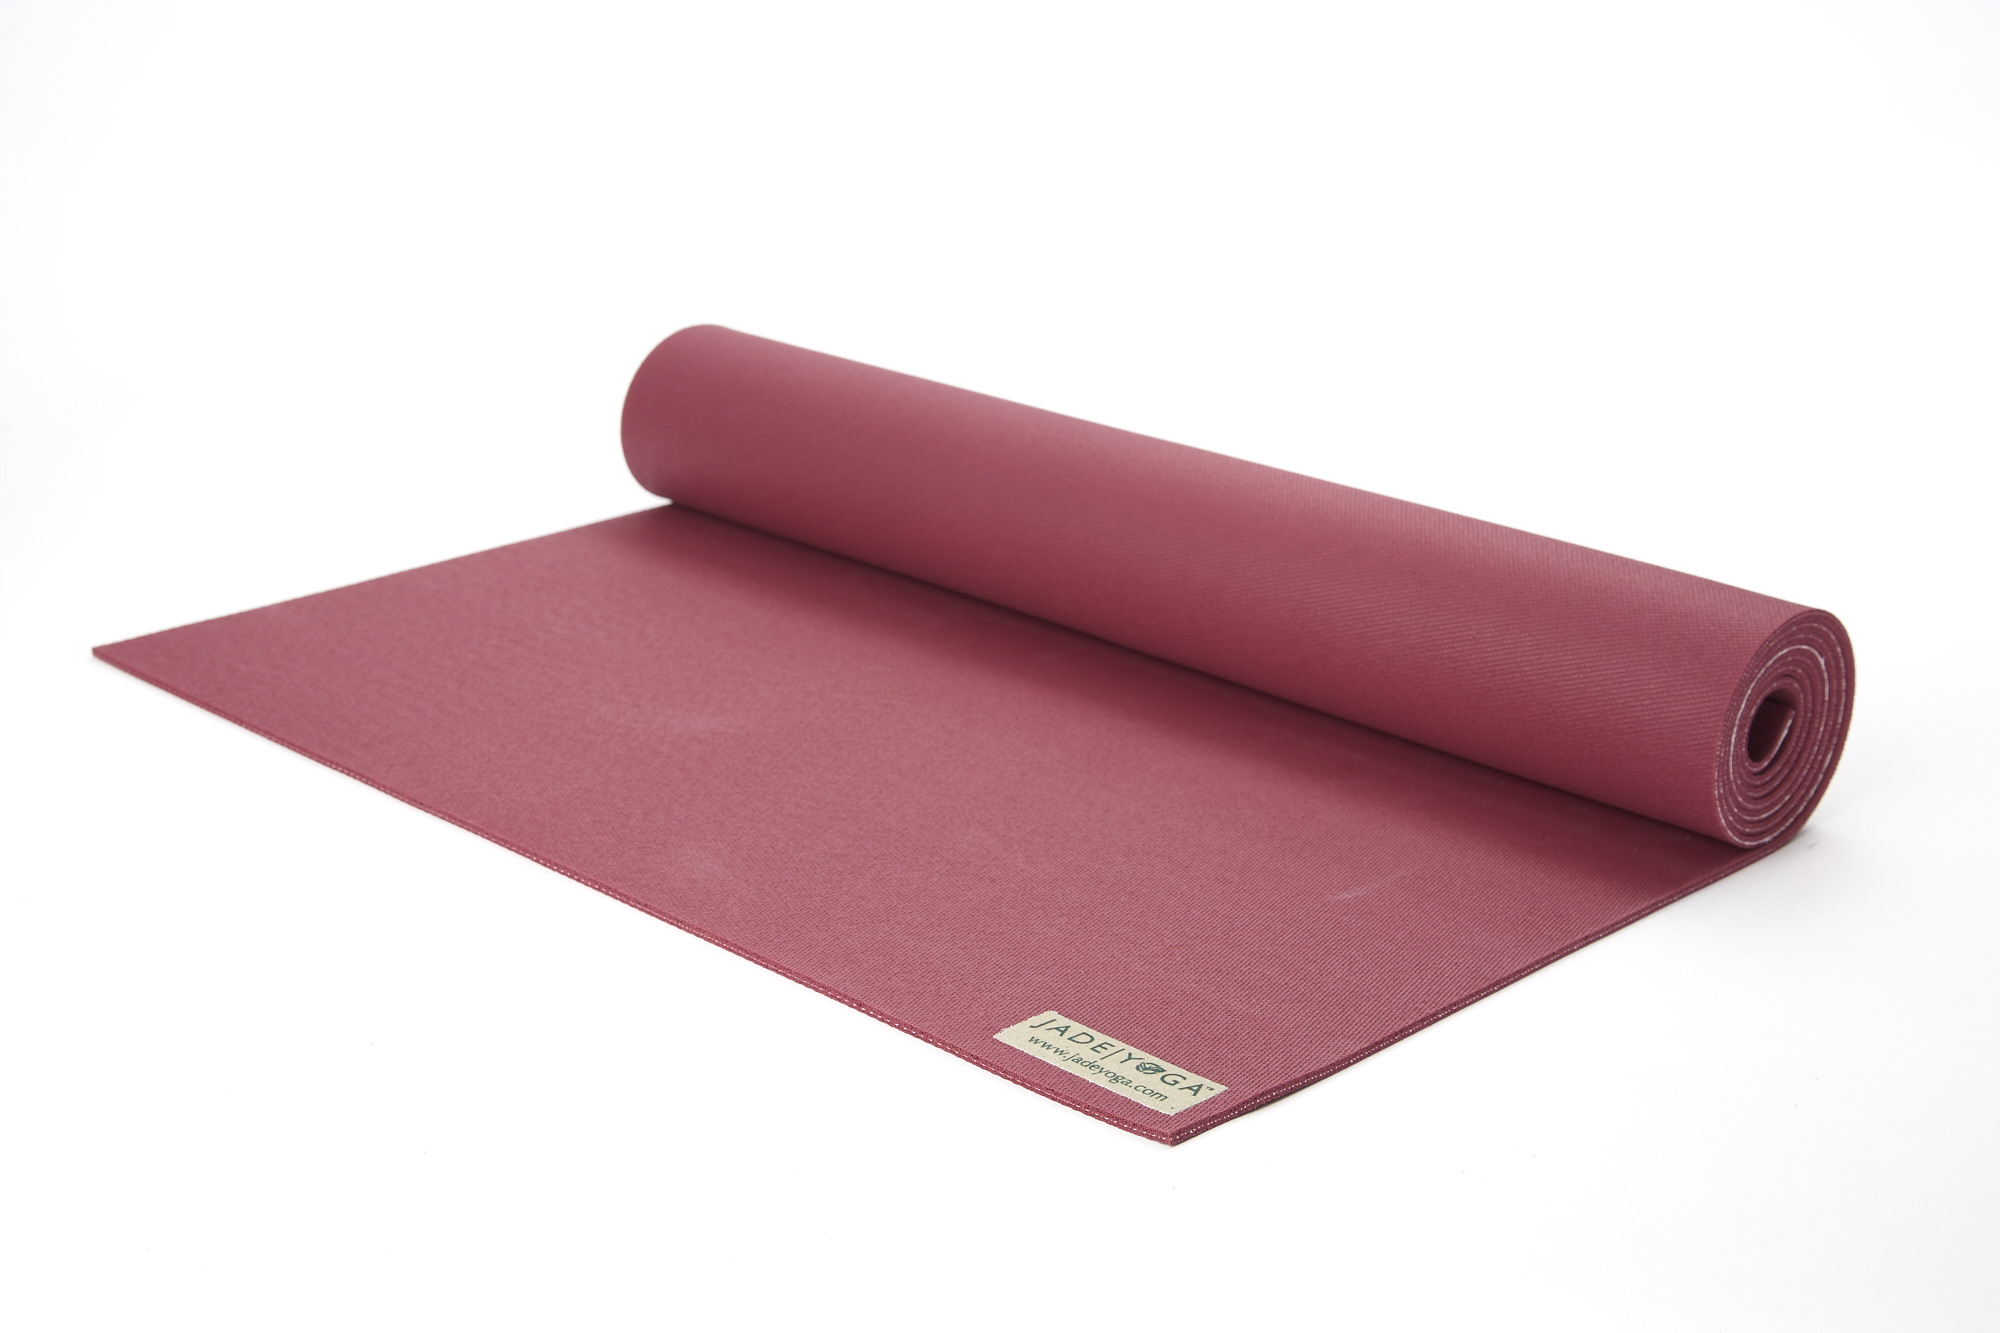 How To Clean A Jade Yoga Mat 7 Of The Best Yoga Mats Well